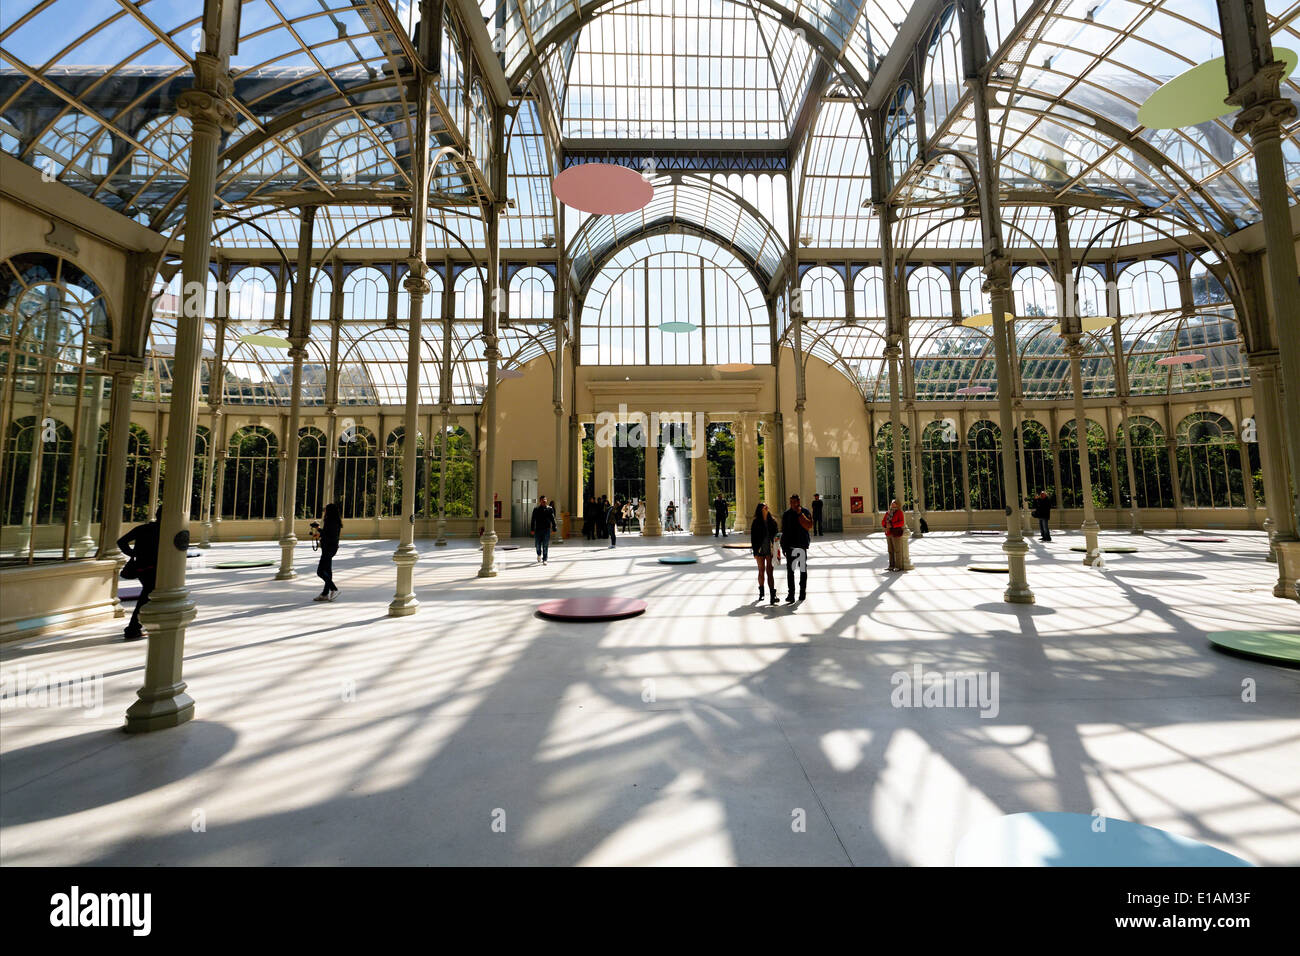 Interior view of glass and metal structure crystal palace buen stock photo royalty free image - Steel framing espana ...